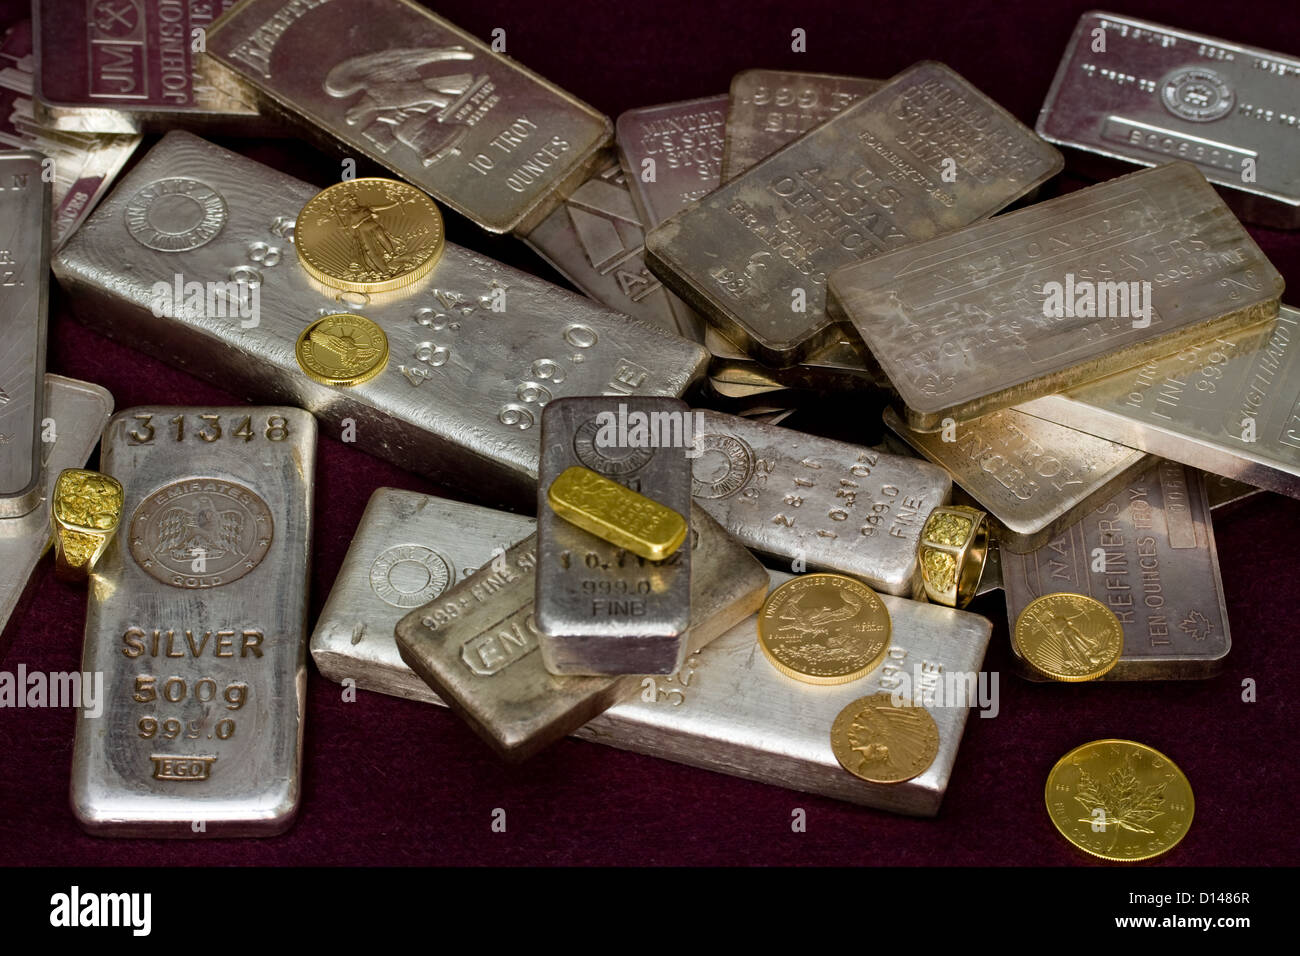 gold and silver bullion bars ingots coins and rings